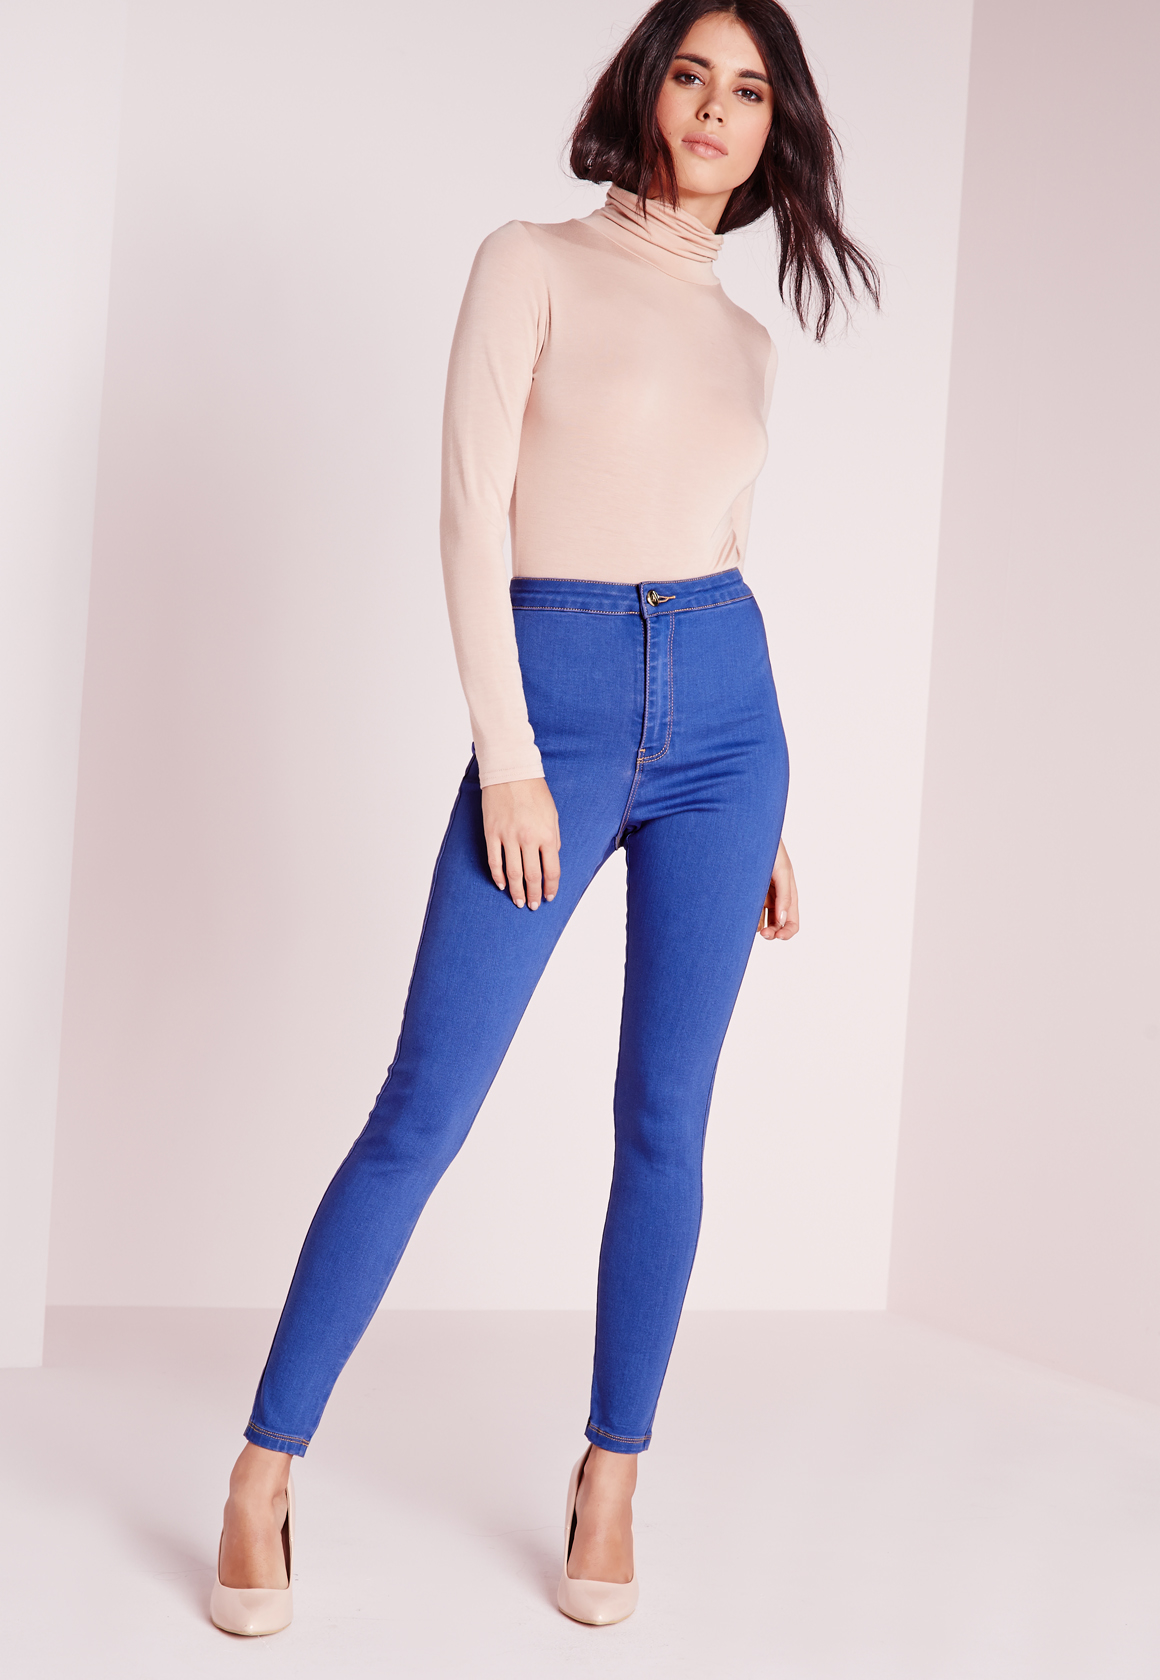 Blue Jeans Waisted Skinny Super Lyst Stretch High Missguided Vice 0qPx8w64